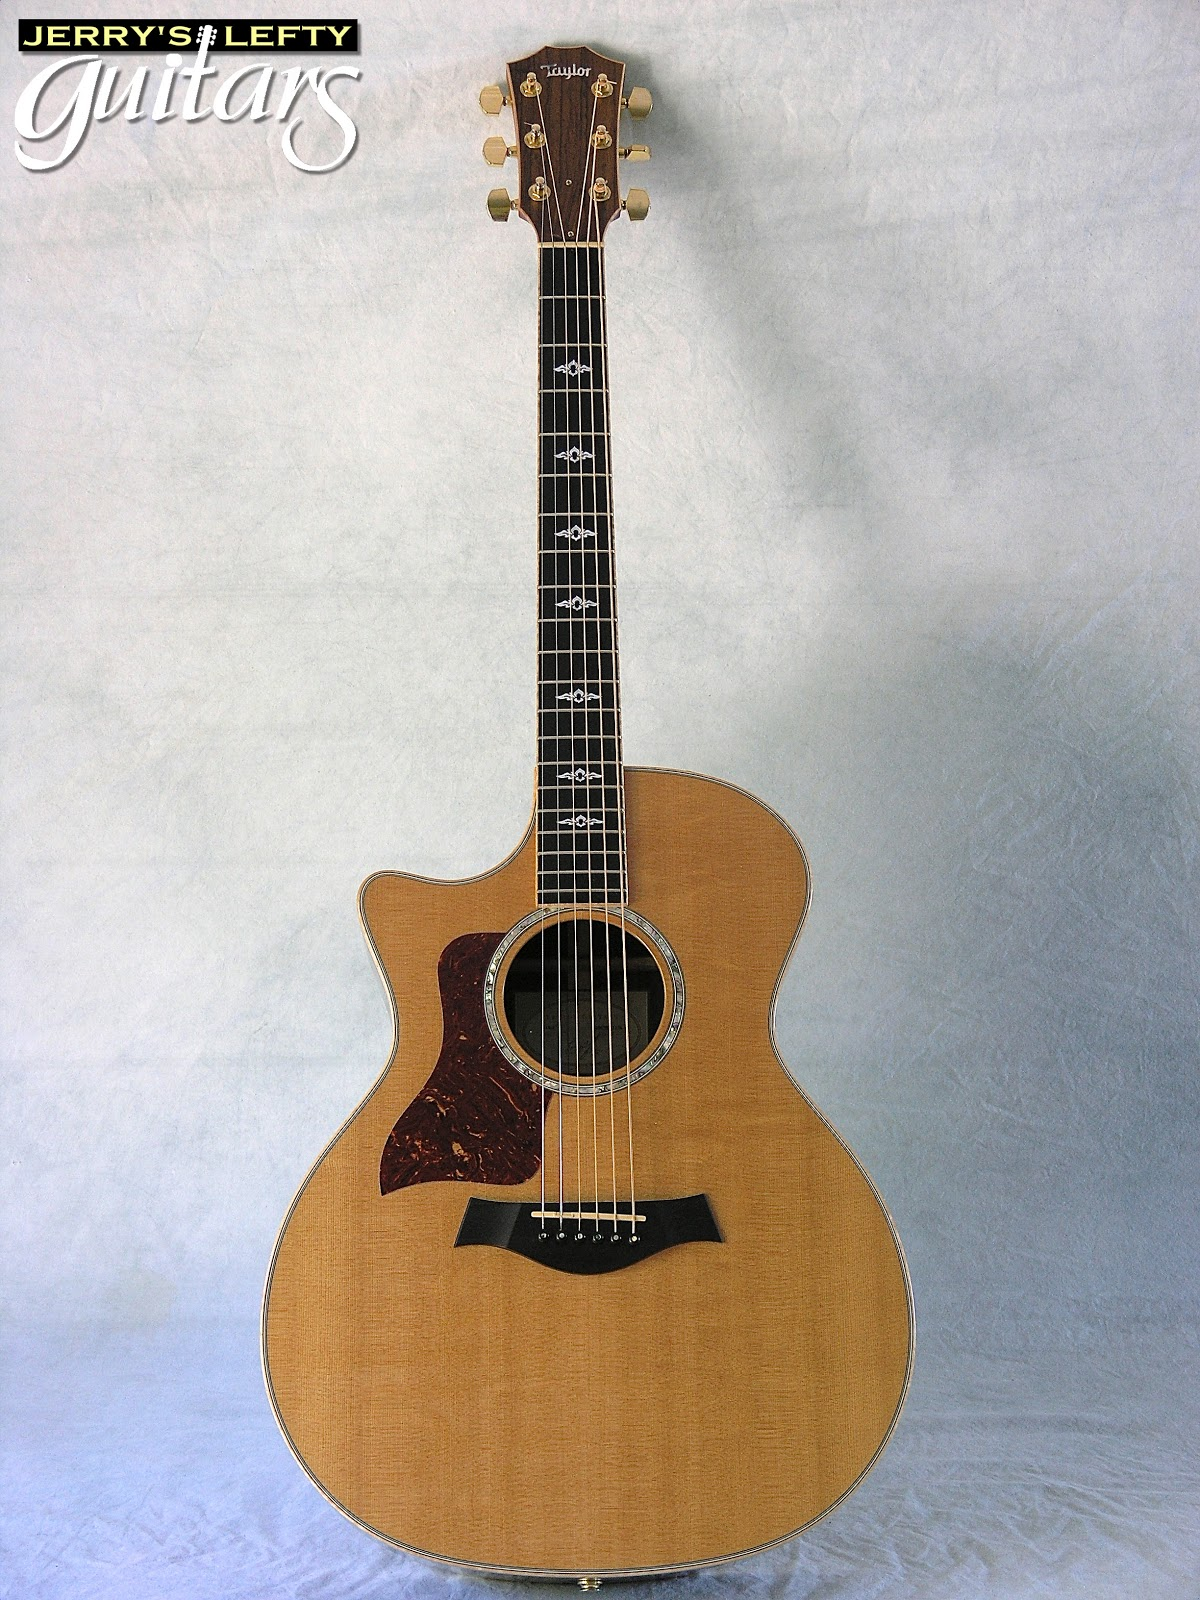 jerry 39 s lefty guitars newest guitar arrivals updated weekly 2007 taylor 814ce used left. Black Bedroom Furniture Sets. Home Design Ideas